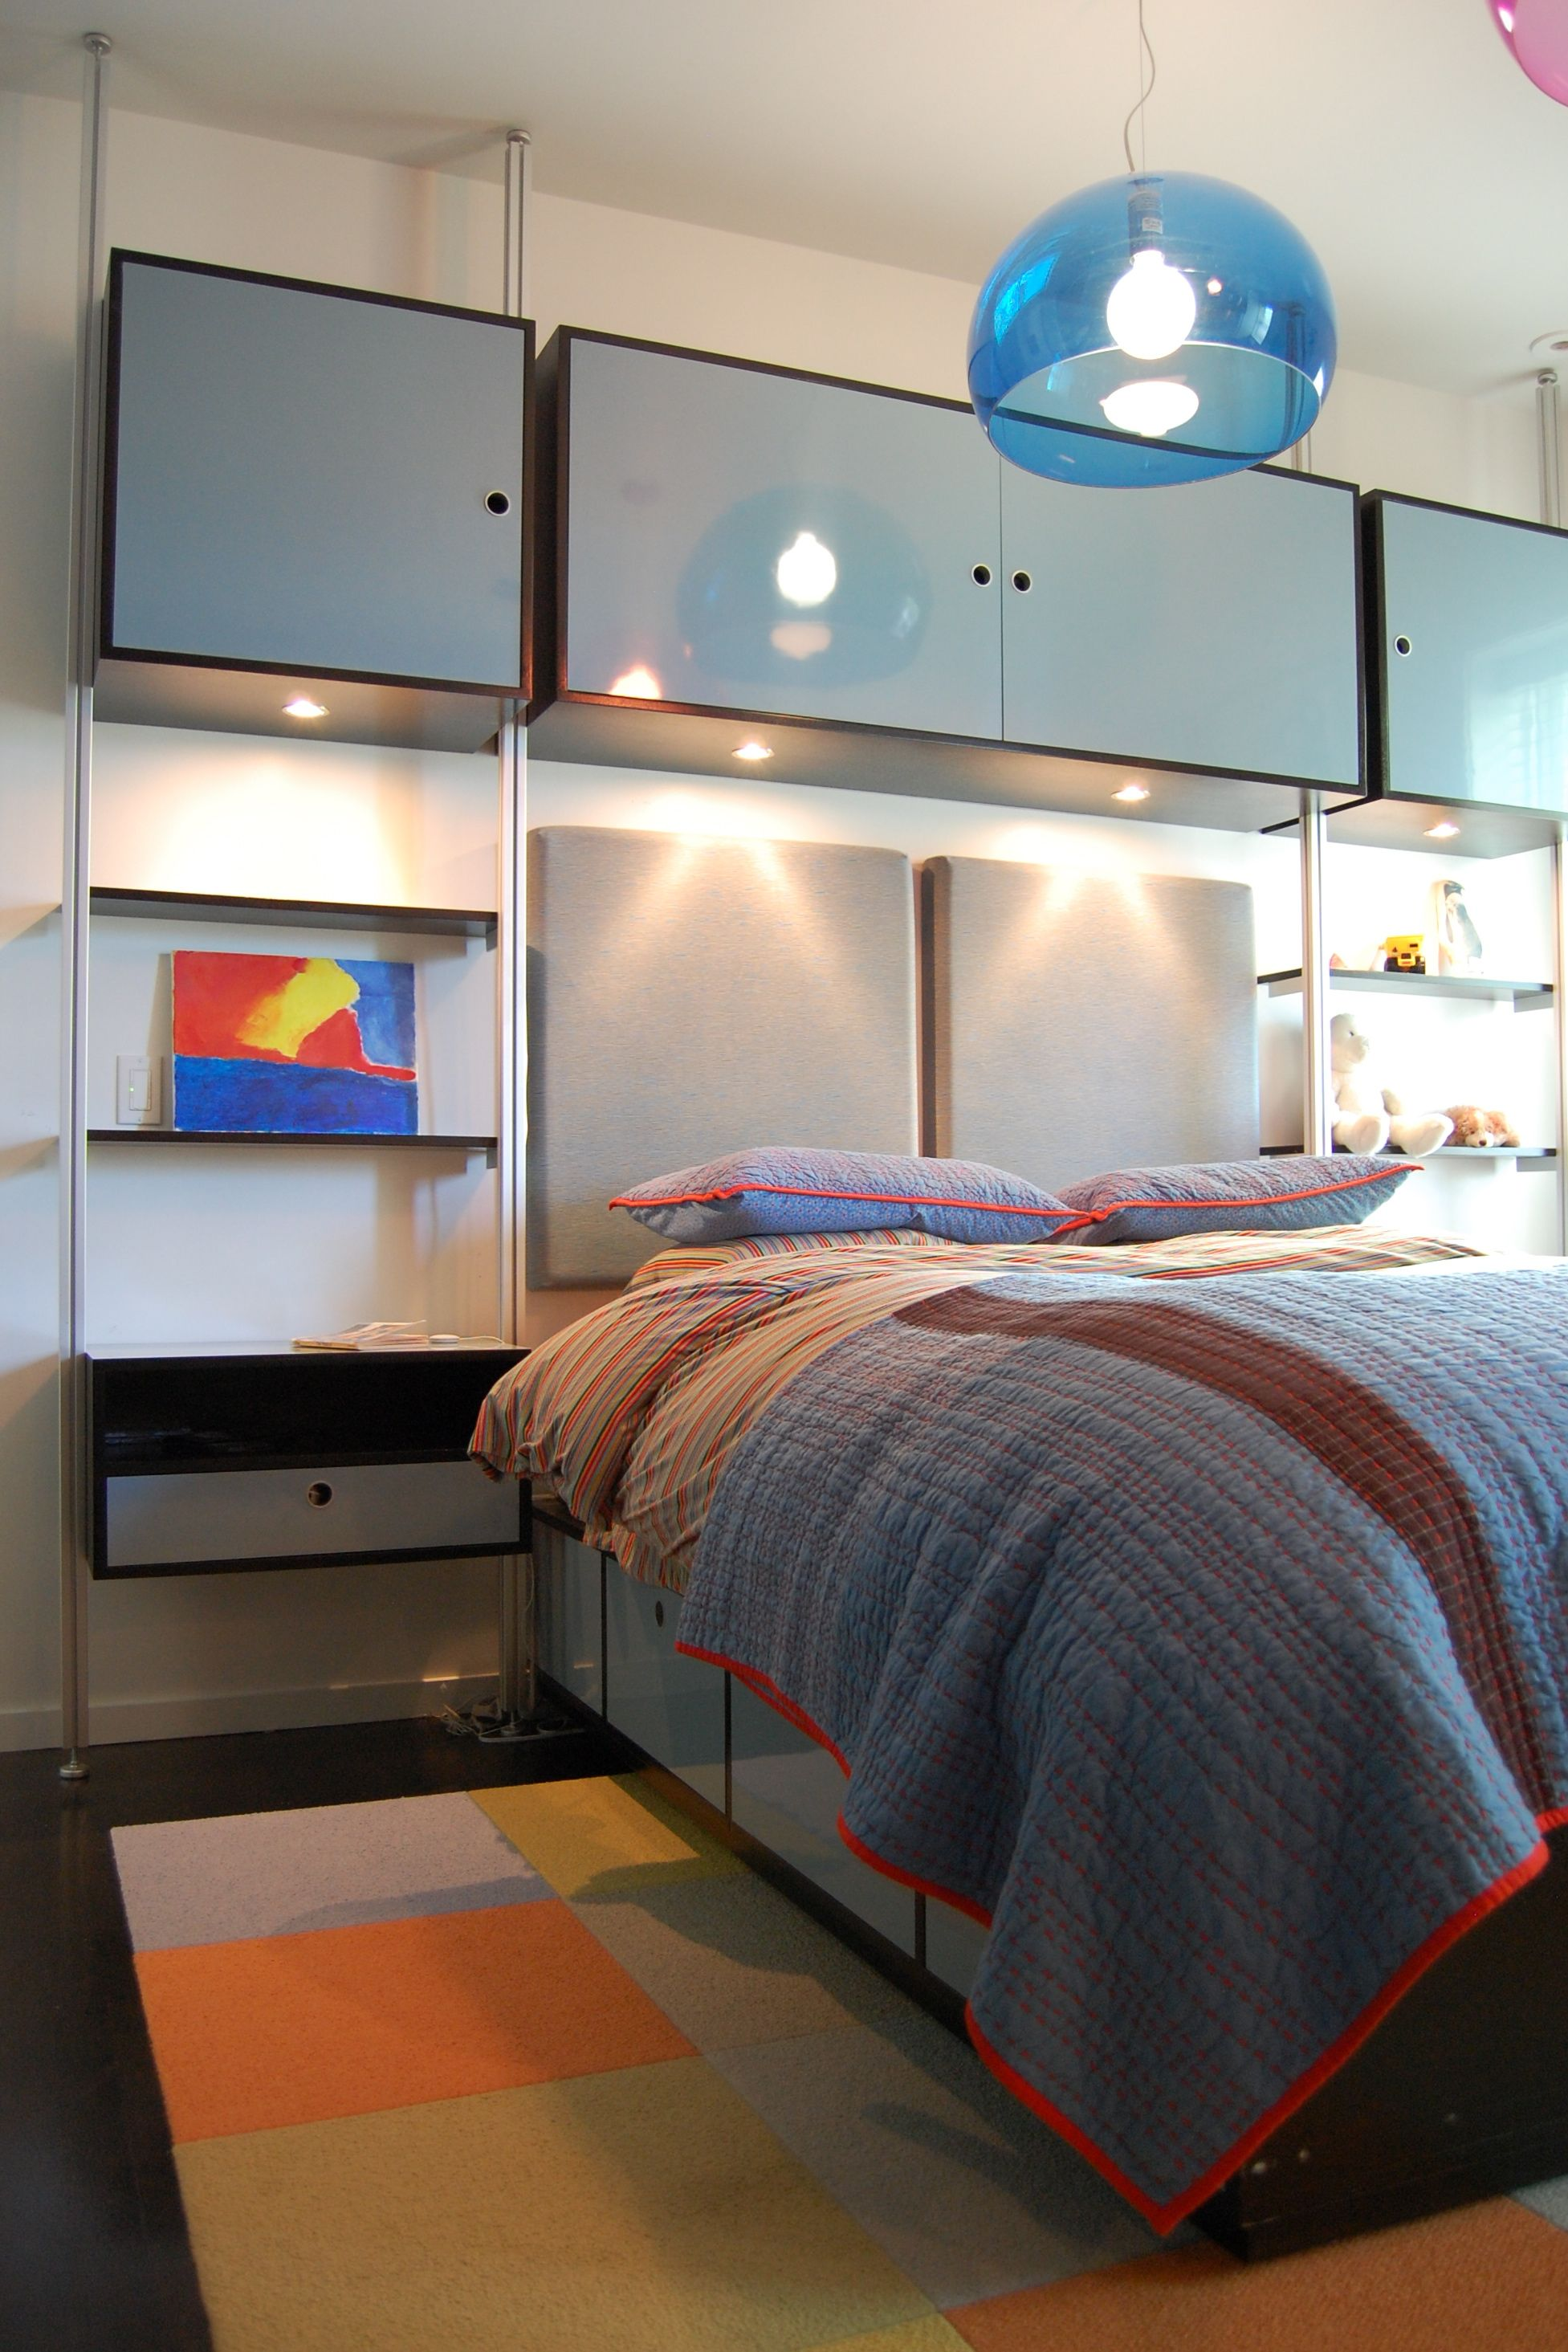 Girl And Boy Room Ideas 11 Year Old Boys Custom Bedroom Design Including Modular